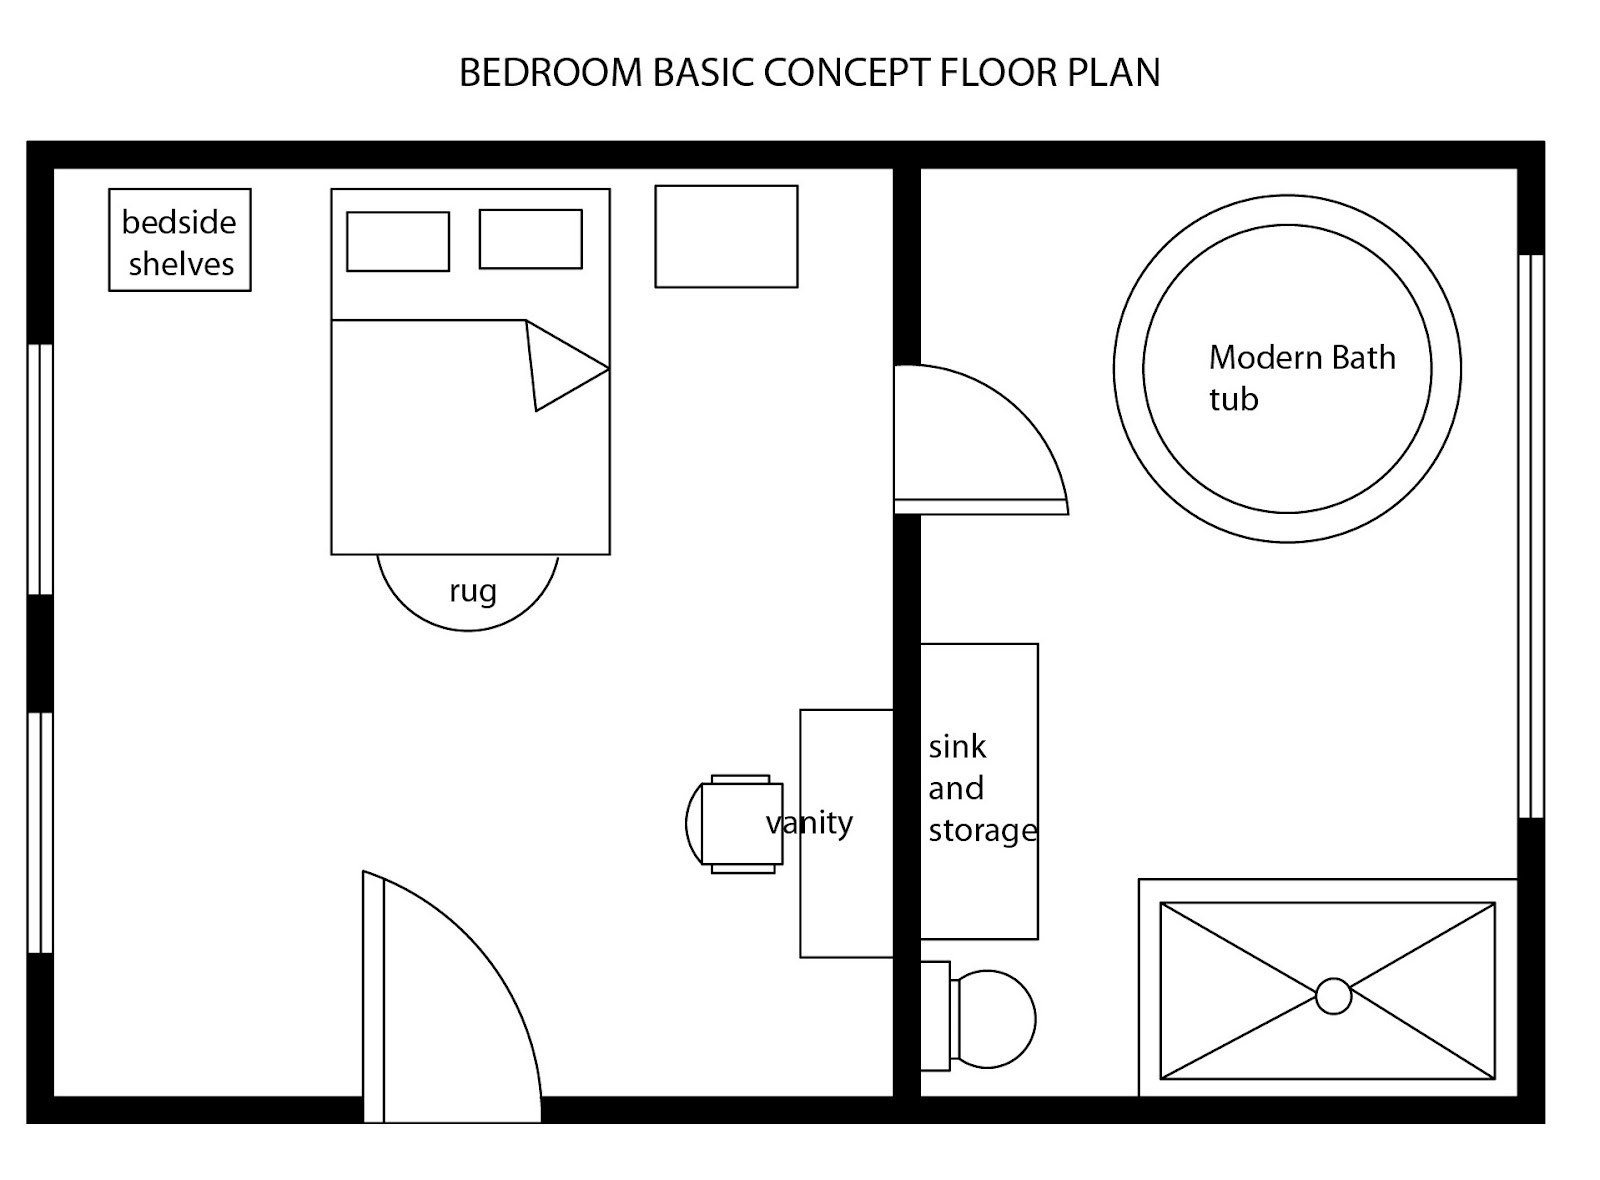 Interior design decor modern bedroom basic floor plan for Sketch plan for 2 bedroom house